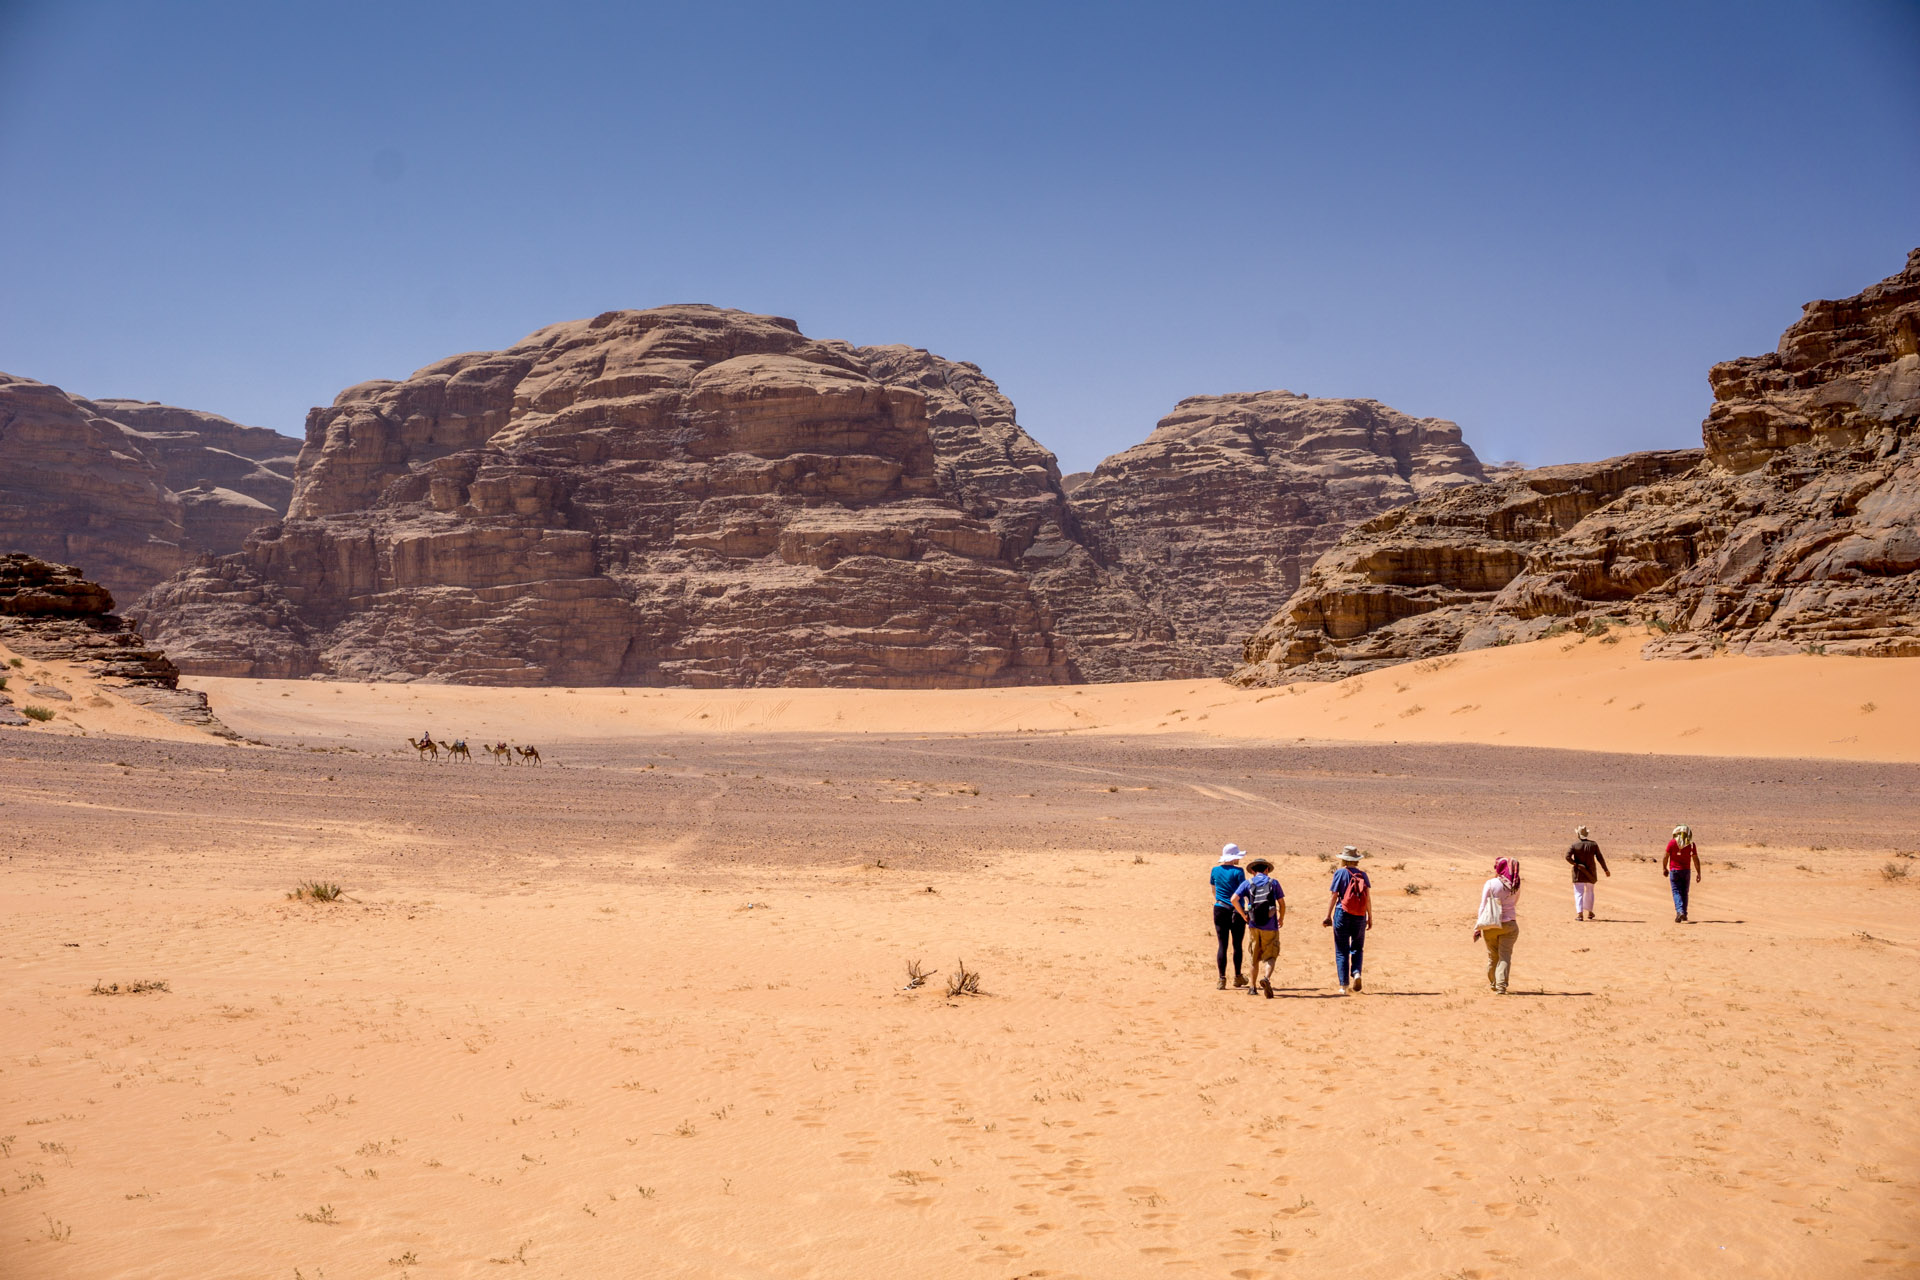 Though solo travel to Jordan is safe, some people feel safer traveling in groups